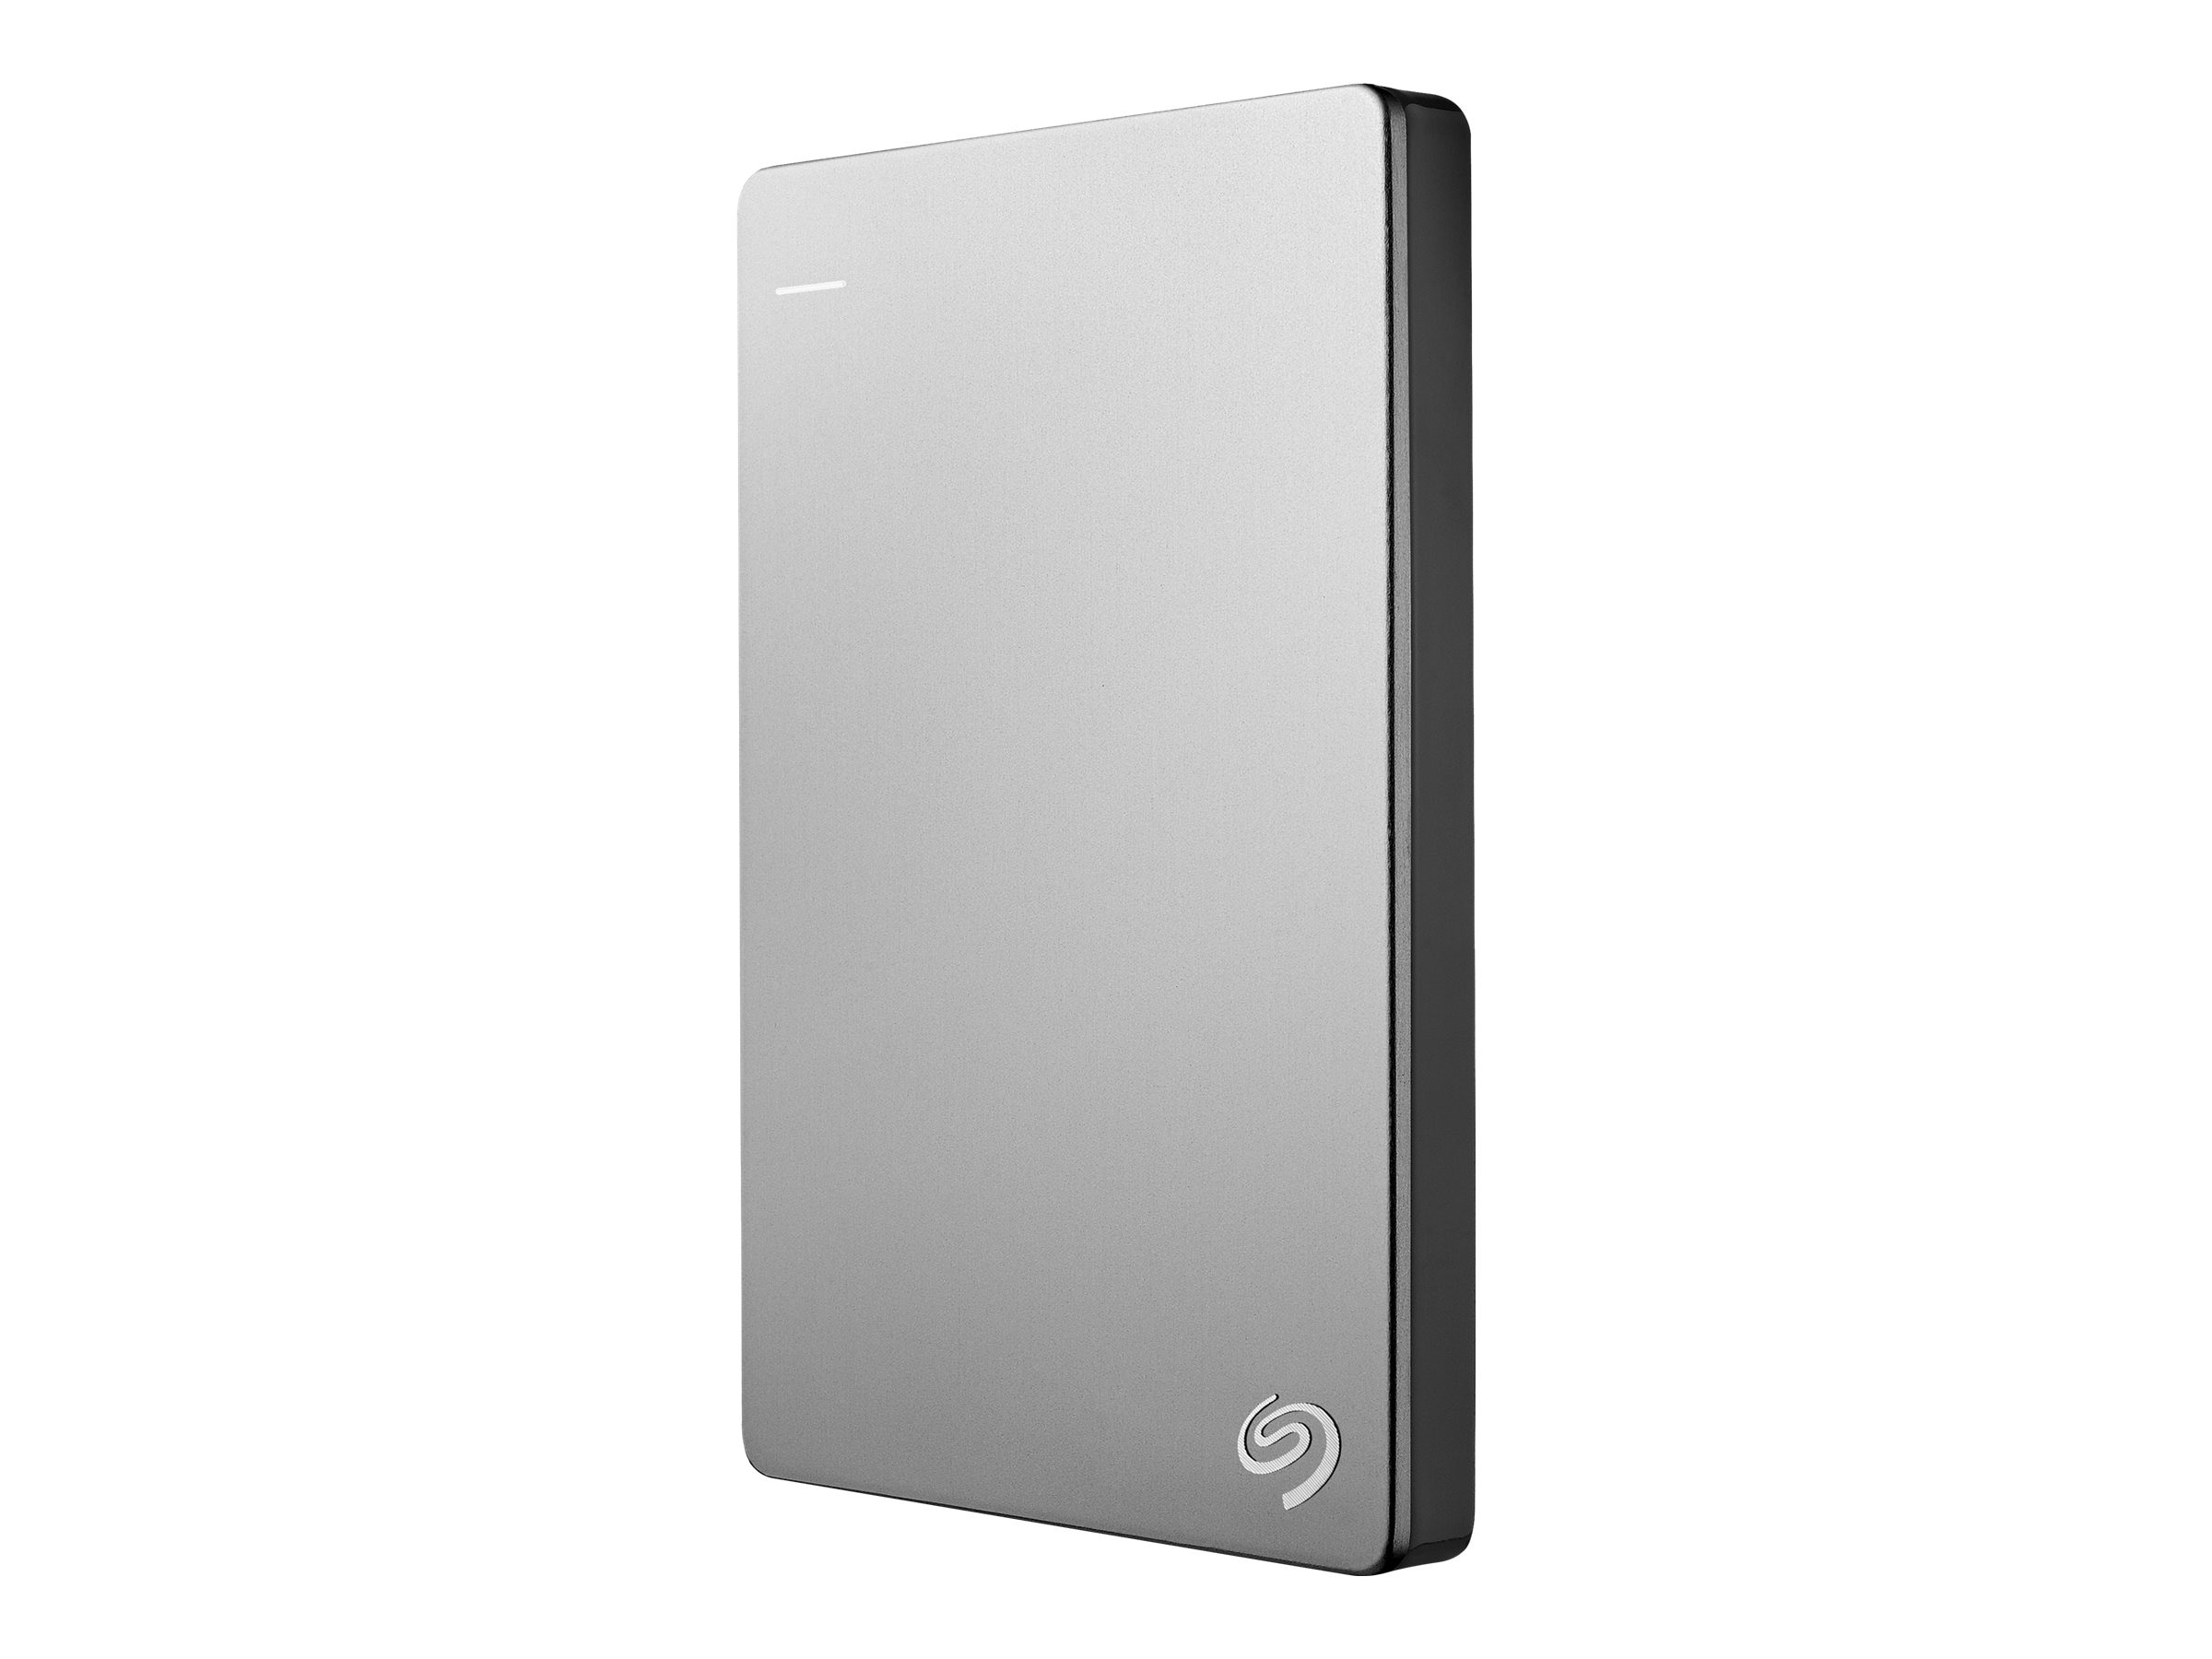 Seagate Technology STDS1000100 Image 1